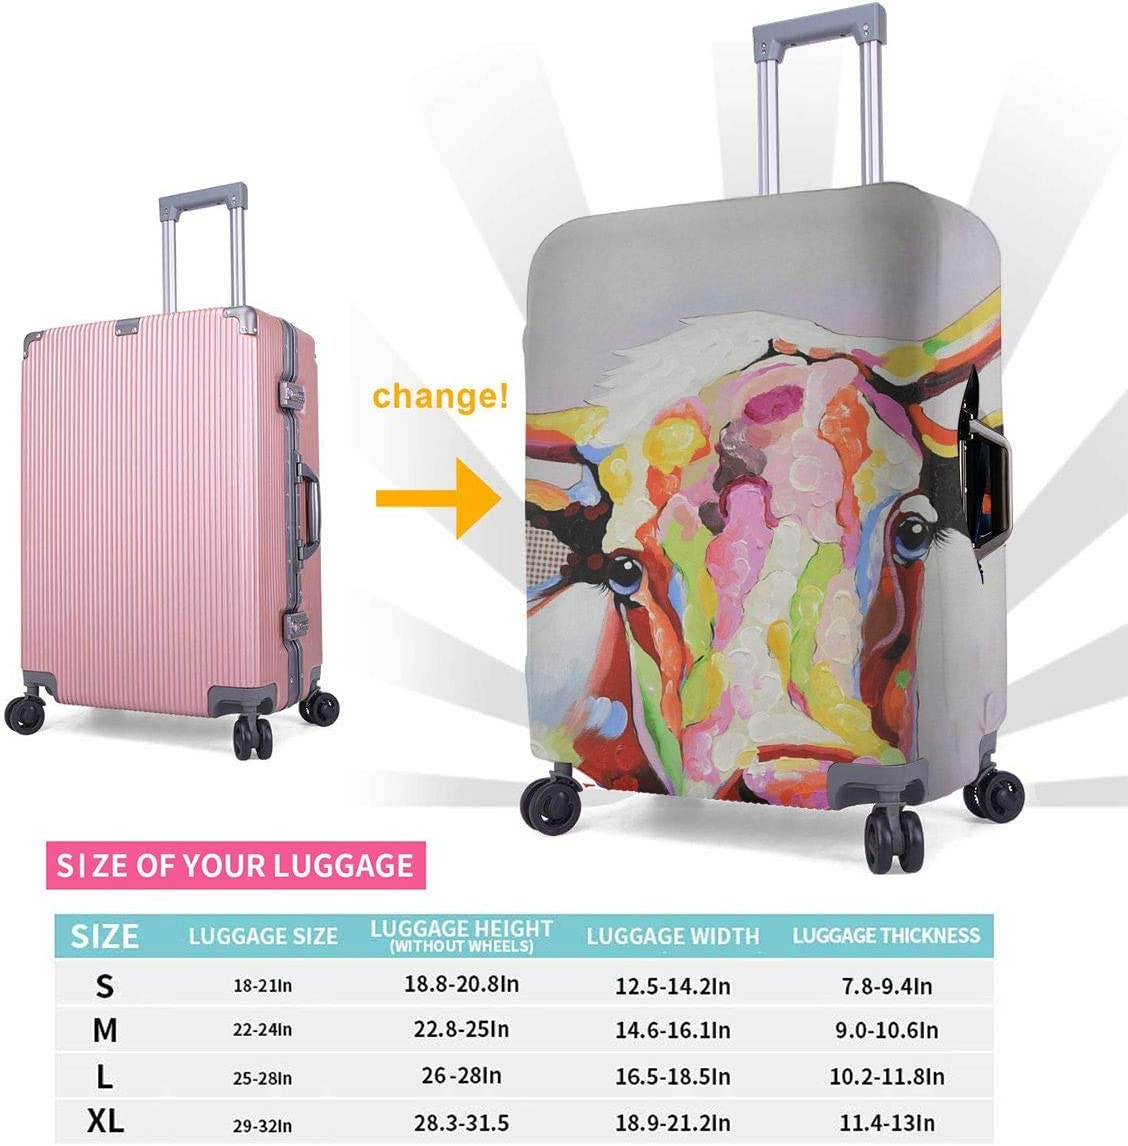 Yuotry Travel Luggage Cover Color Cattle Head Zipper Suitcase Protector Luggage with Fixed Buckle Fits 18-32 Inch Luggage XL